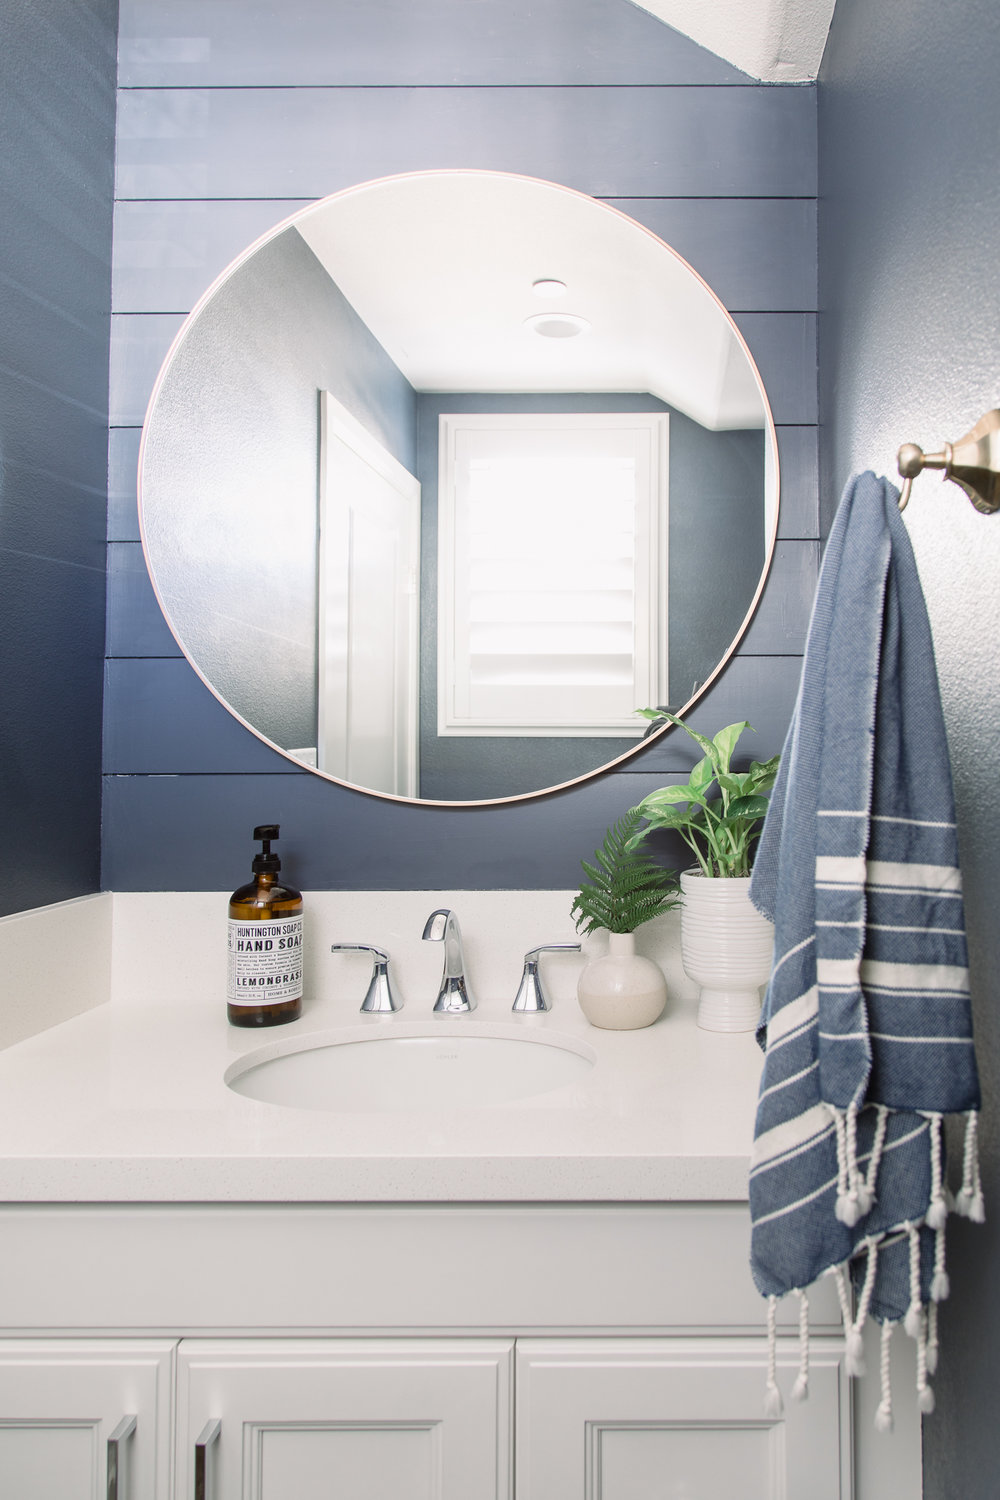 The powder room is painted a deep blue, in stark contrast to the white walls in the rest of the house.